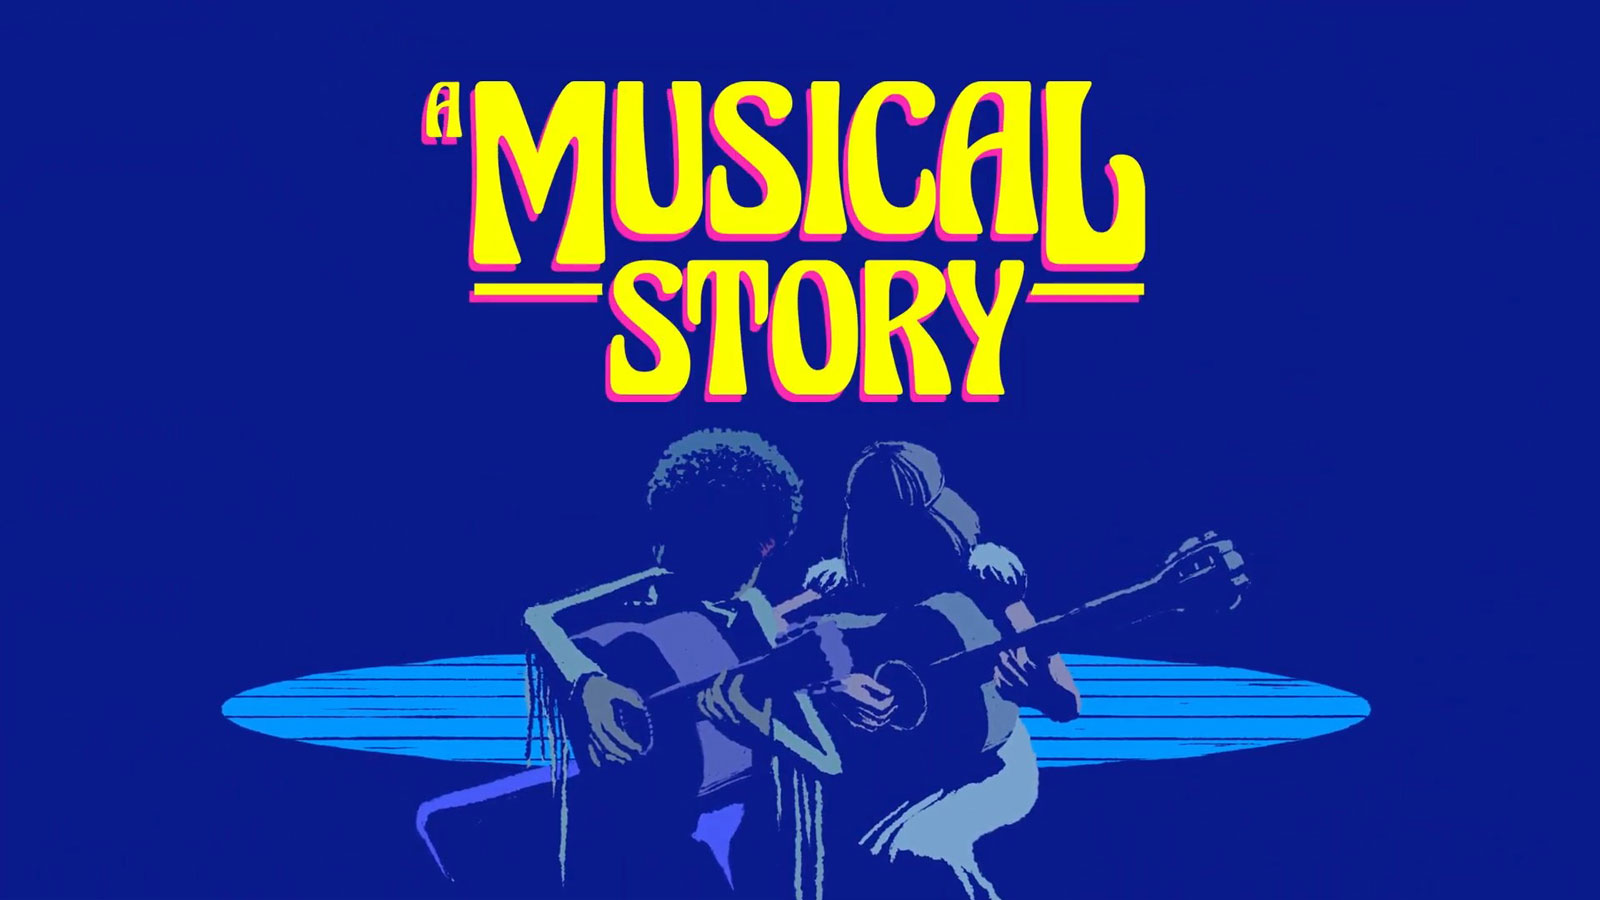 Free A Musical Story Wallpaper in 1600x900